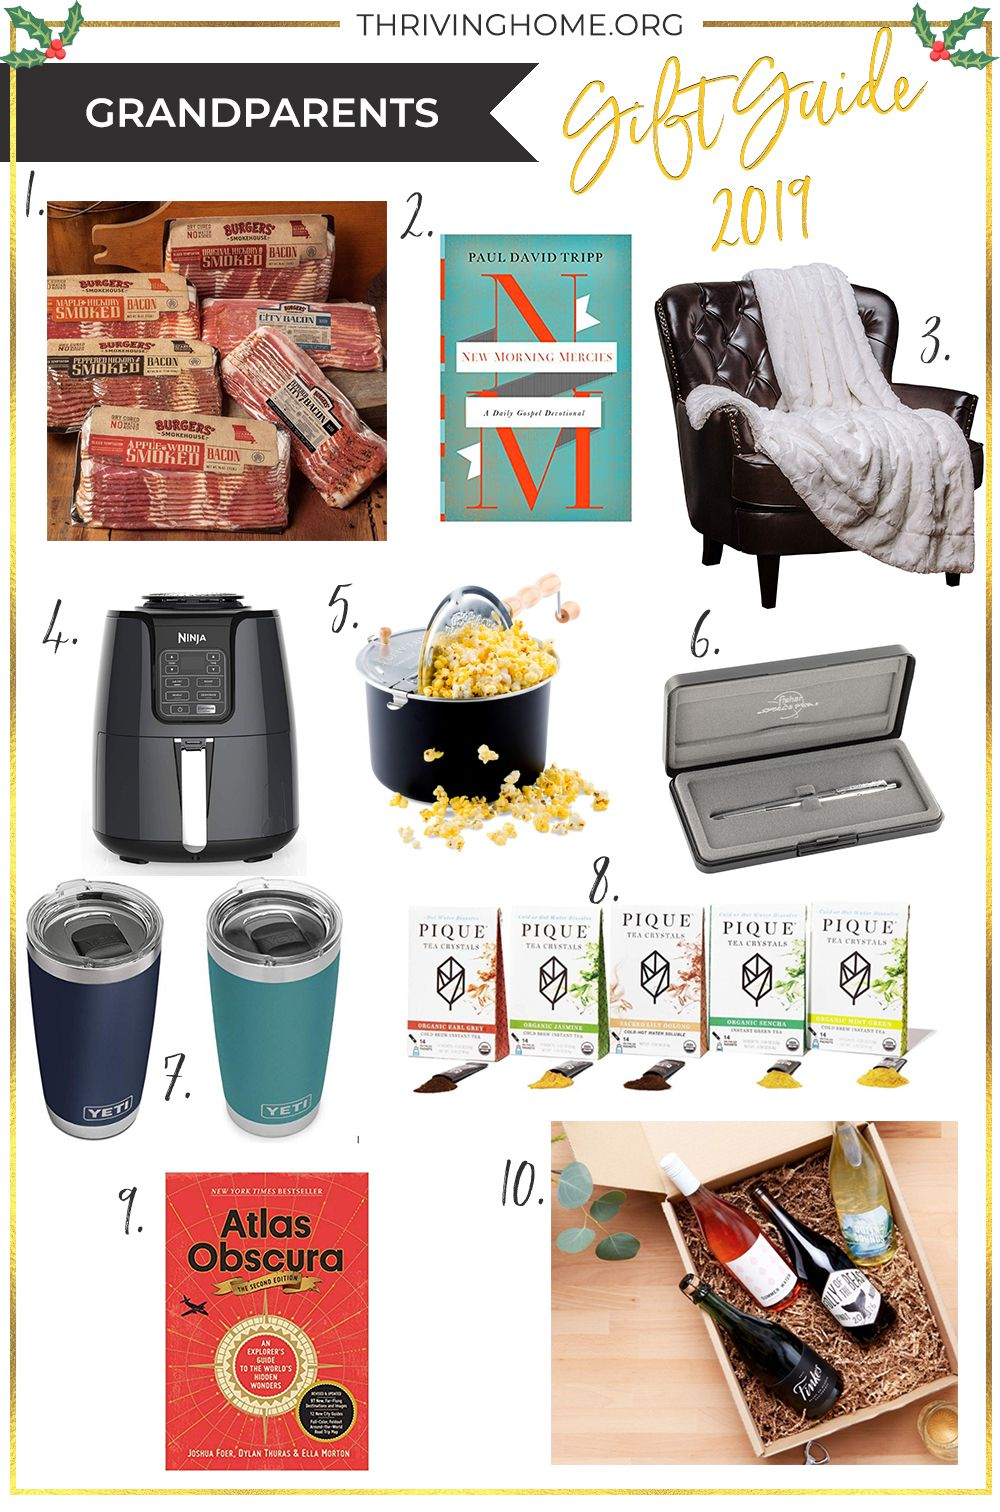 Gift Guide: Grandparents - Thriving Home #bestgiftsforgrandparents